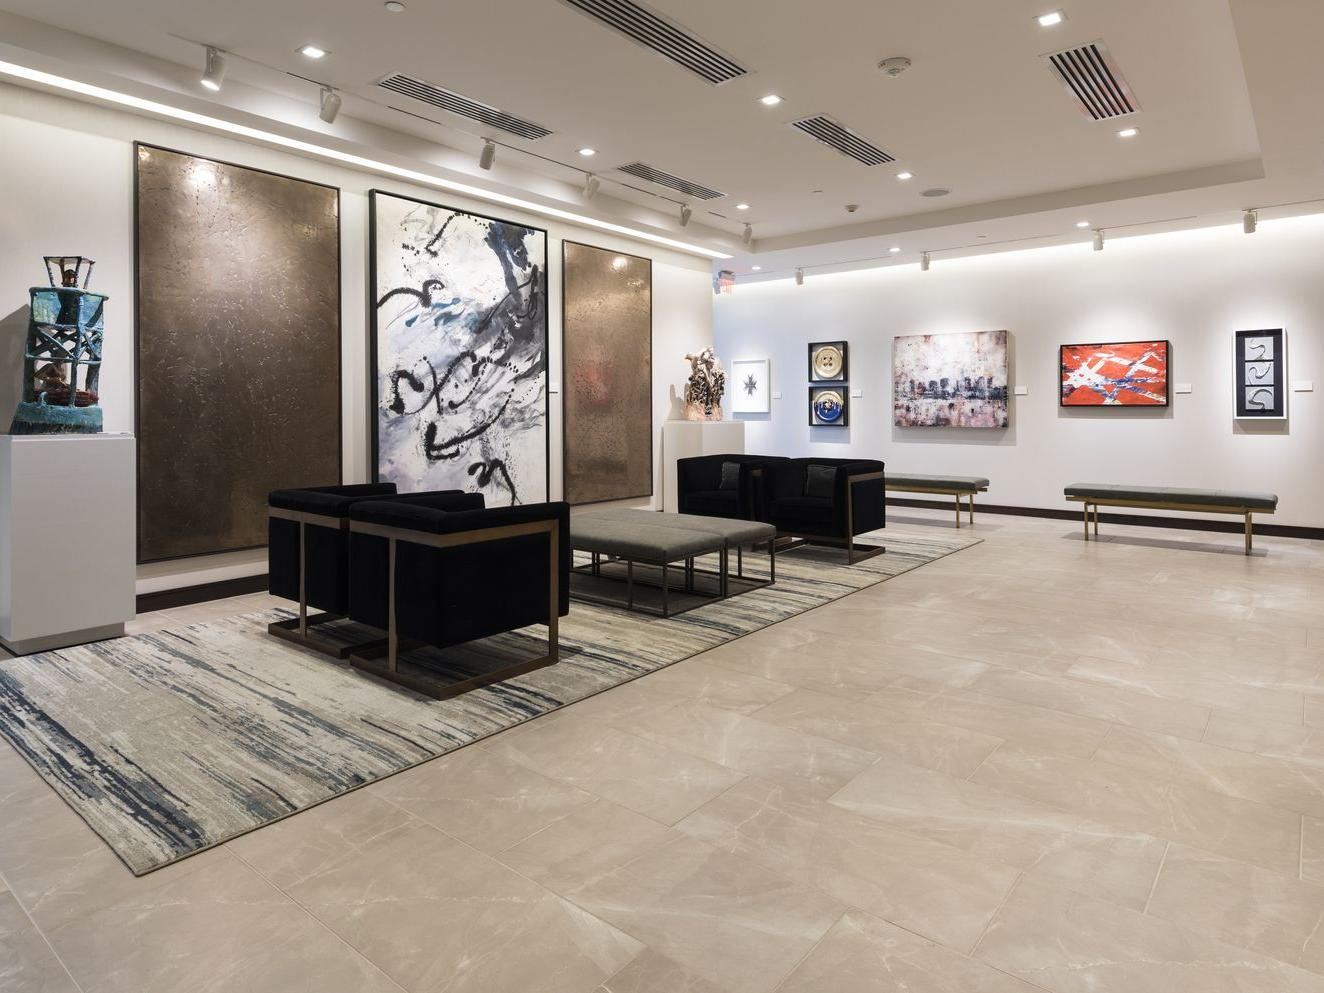 Seating area in art gallery